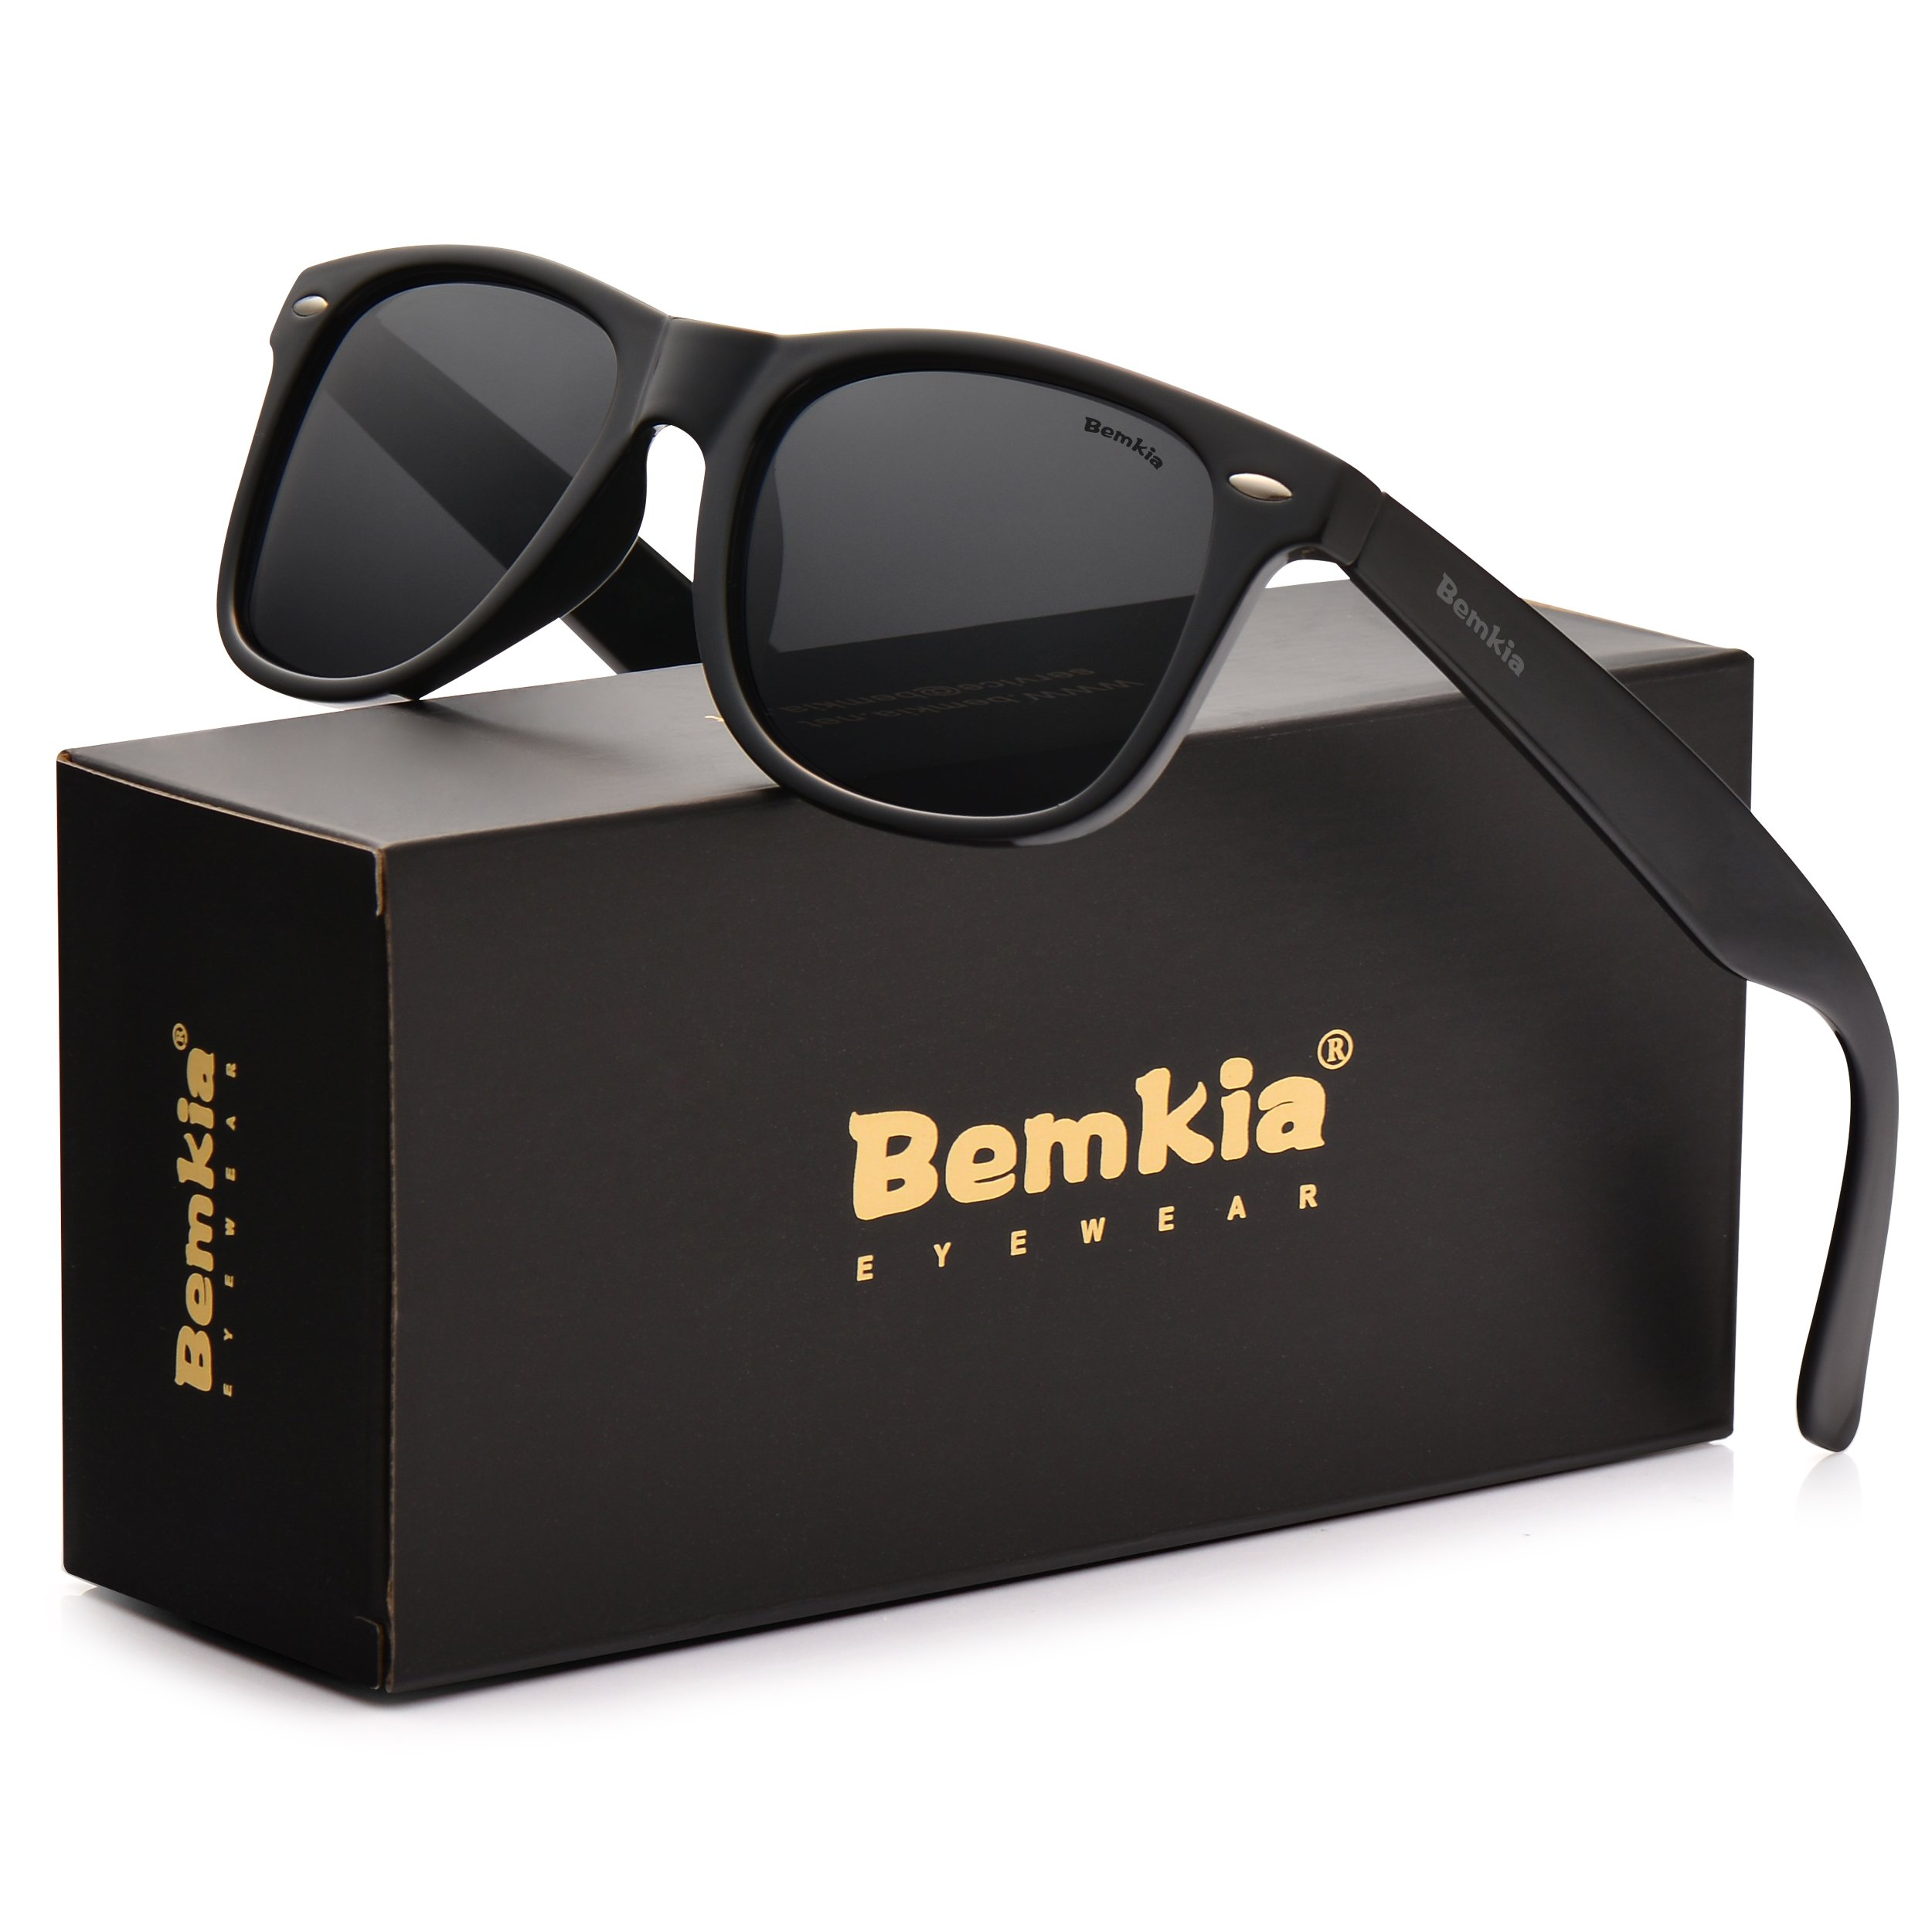 Bemkia Sunglasses Men Women Polarized Retro Classic UV 400 Protection 54 MM (13 Glossy Frame With Rivets/Black Non-Mirror Lens,54) by Bemkia